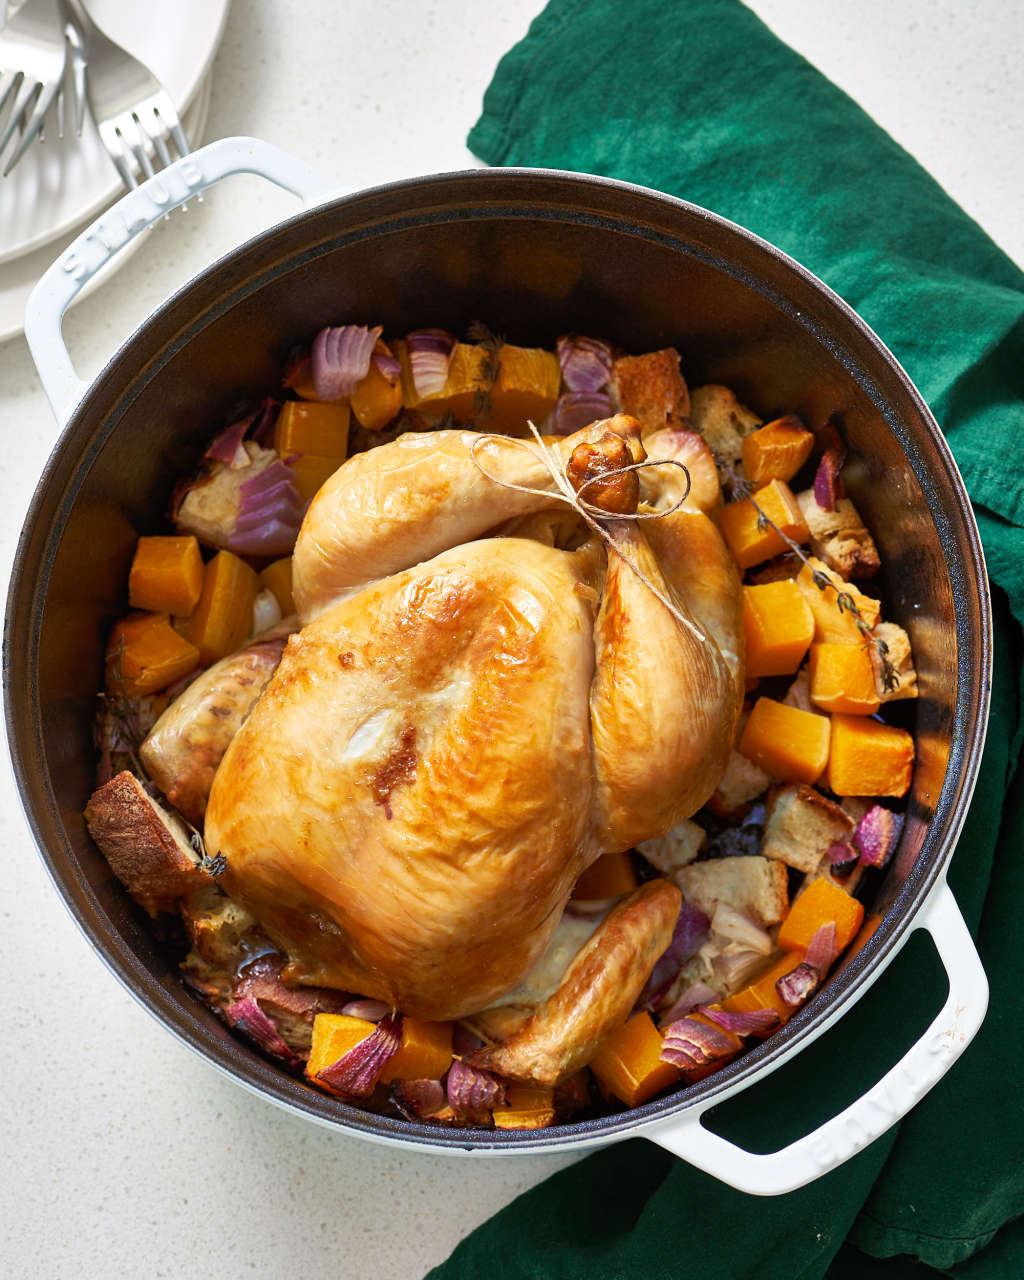 The Dutch Oven Makes the Juiciest Roast Chicken Ever